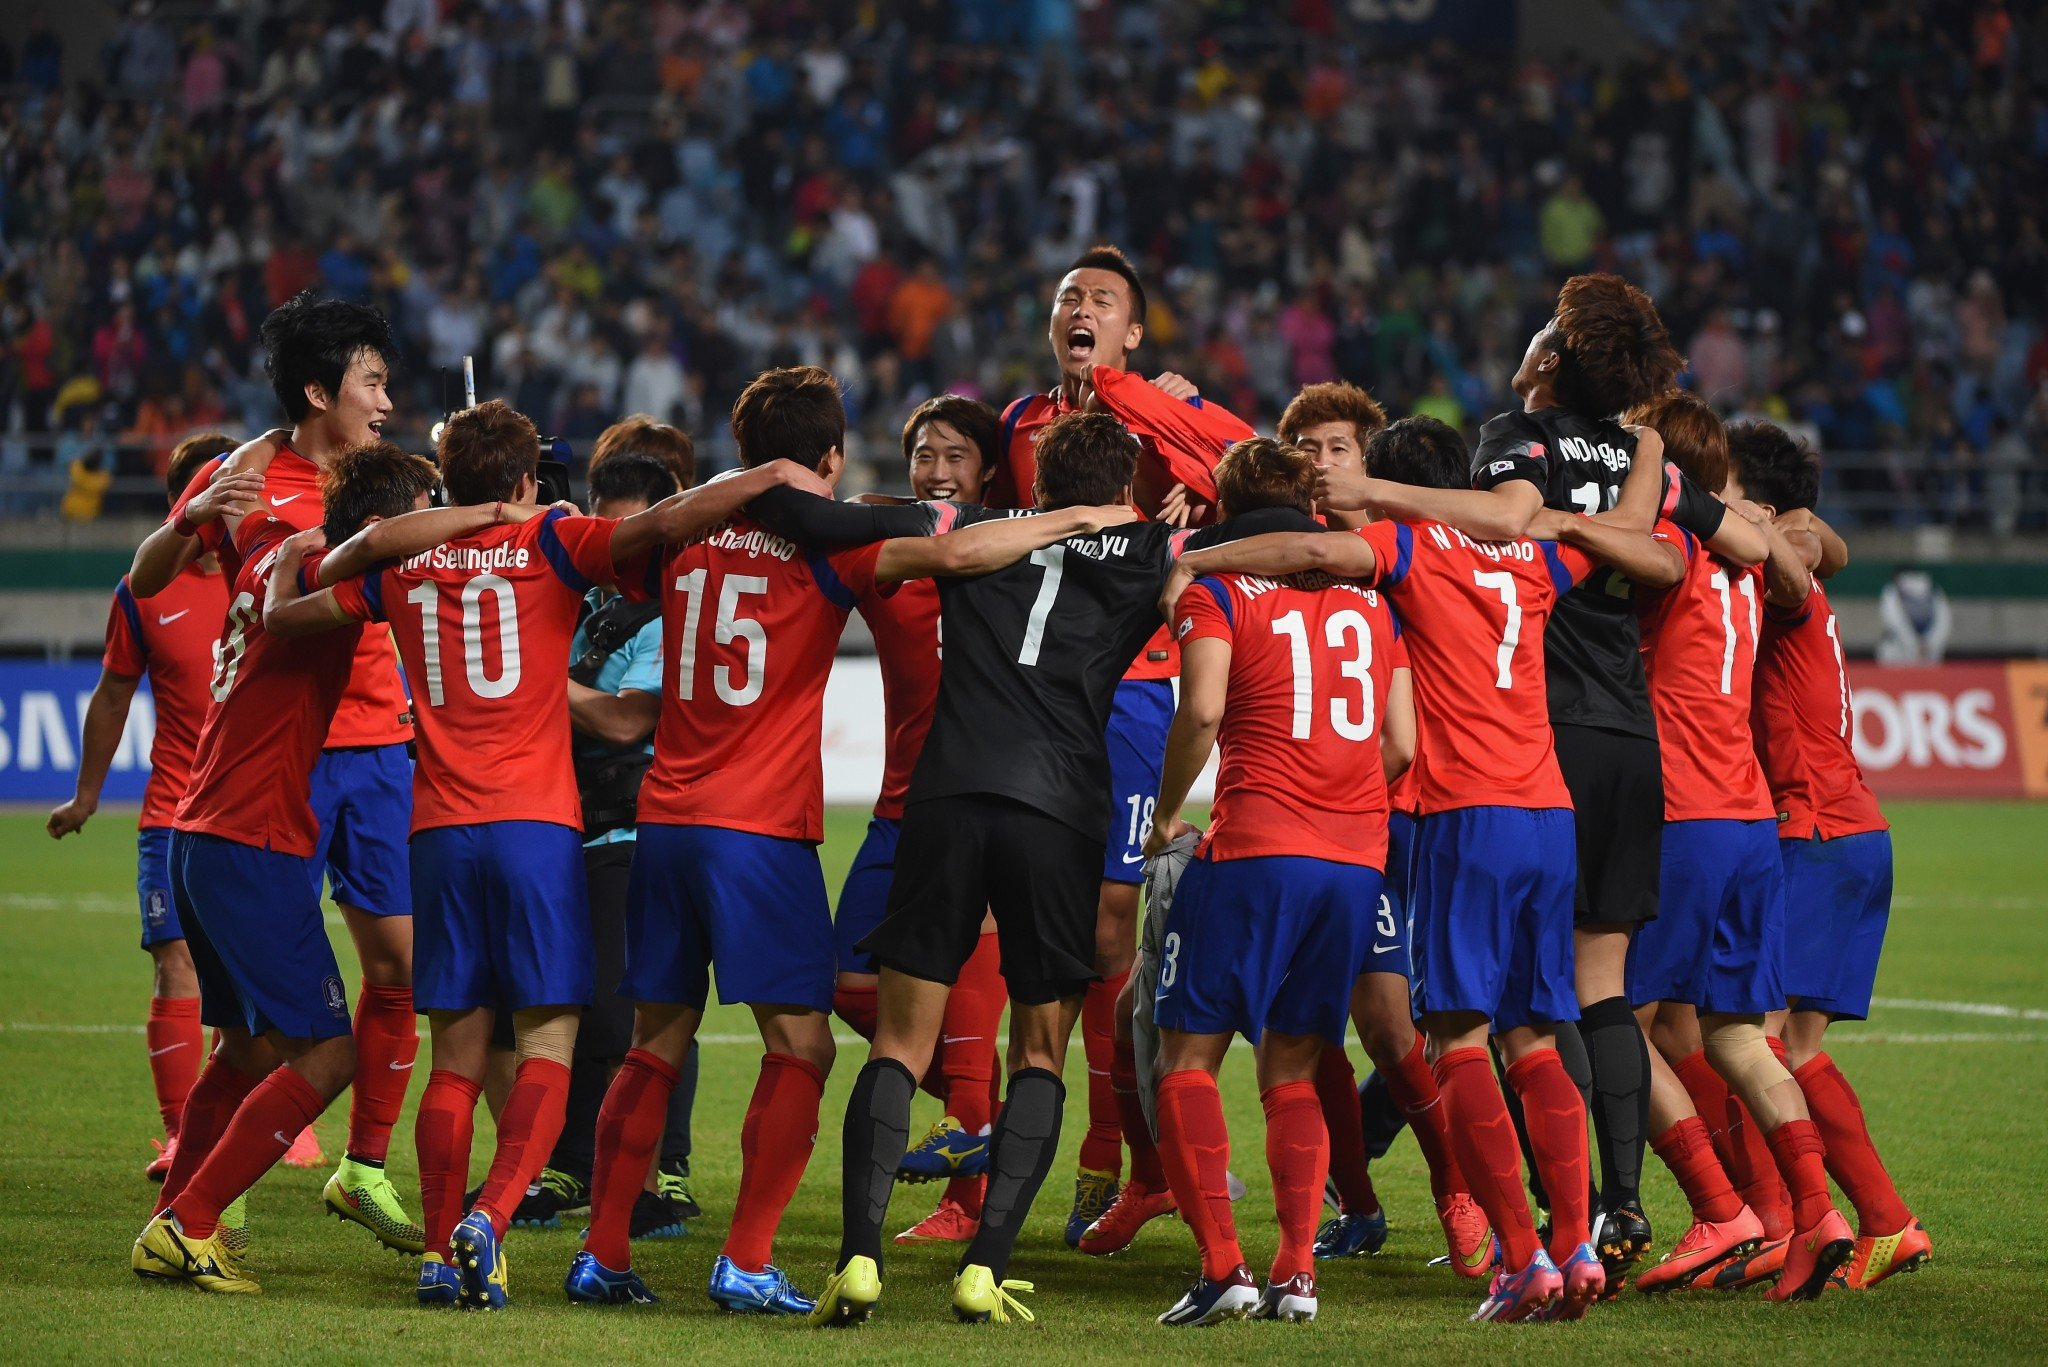 South Korea players celebrate the 1-0 win and gold medal after the Football Men's Gold Medal match between South Korea and North Korea during the 2014 Asian Games in Incheon, South Korea. (Getty)